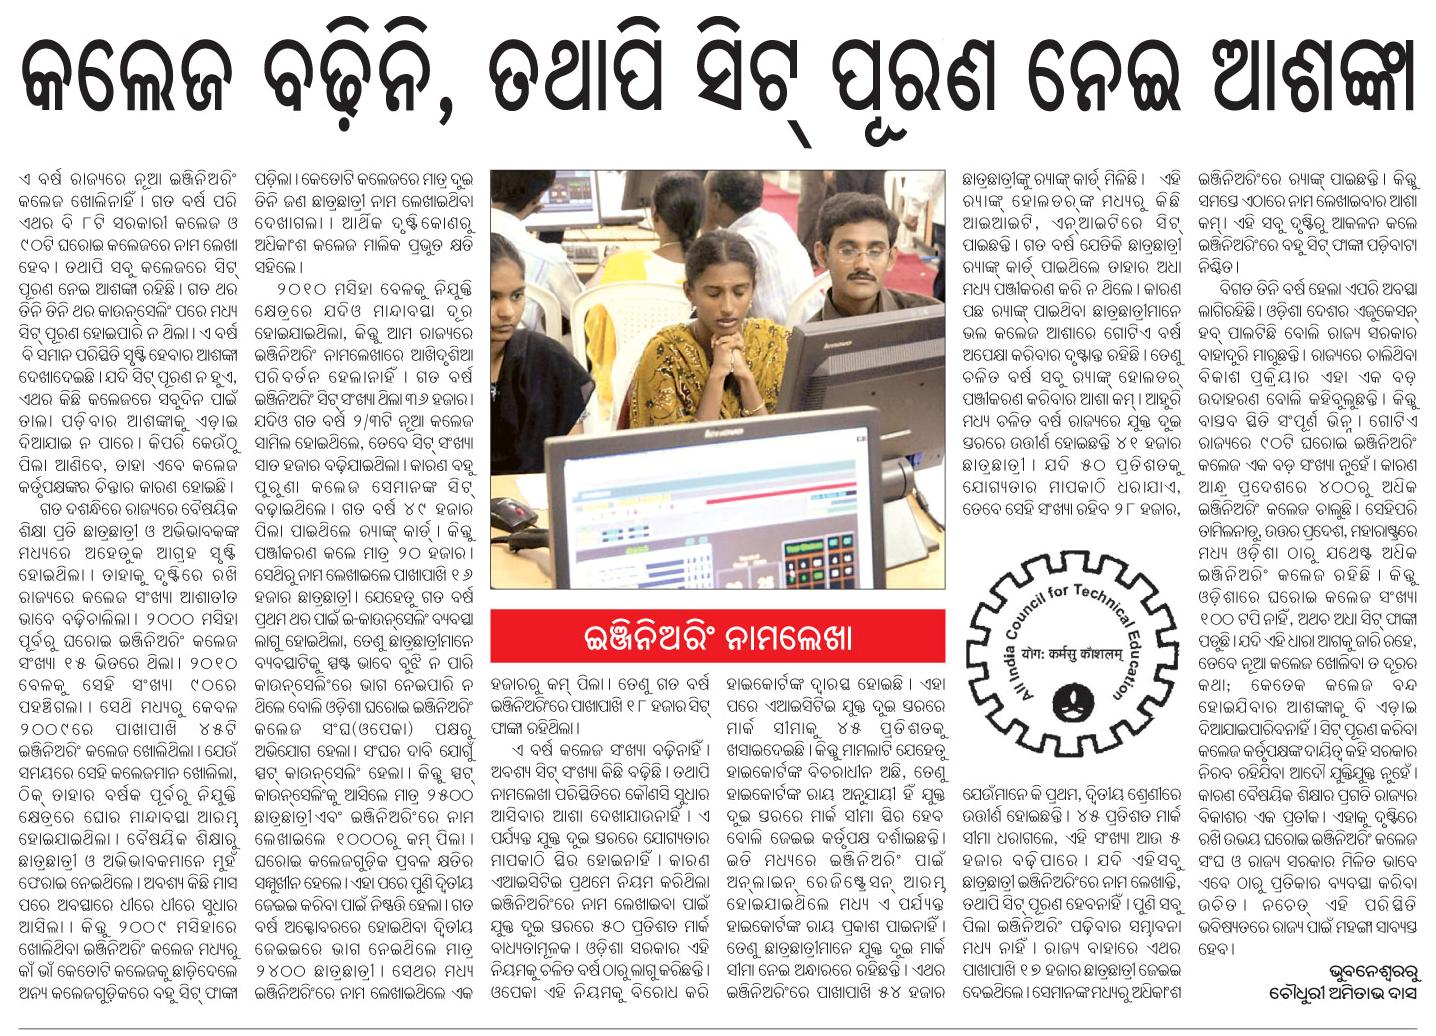 phd thesis in commerce utkal university Recognised by govt of odisha & affiliated to utkal university asbm institute of professional studies bhubaneswar organizational change and development dissertation and viva-voce the bachelor of commerce (bcom) a full-time degree programme, has six semesters after successful completion of the six.